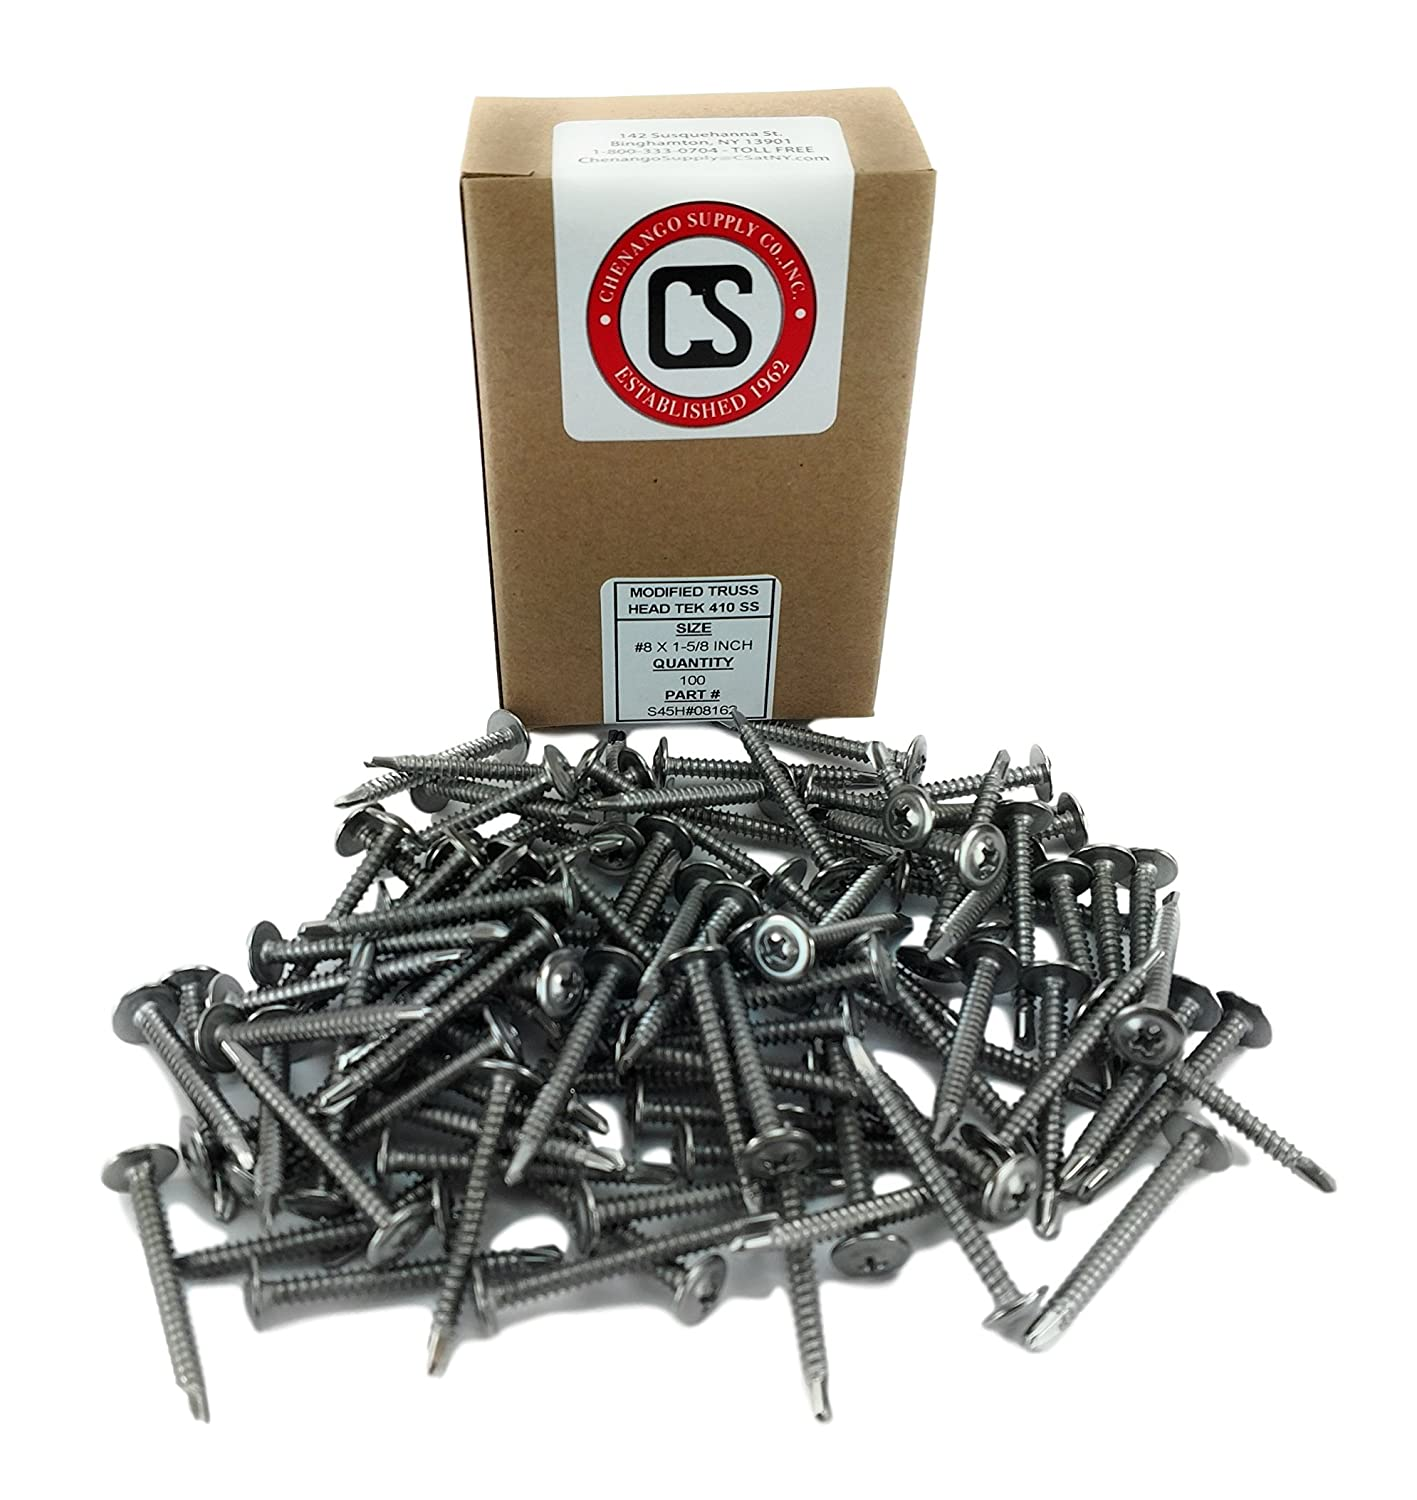 100 pieces 410 Stainless #8 x 1-1//4 Wafer Head Philips Self Drilling Sheet Metal Tek Screws Modified Truss Head Self Driller #8 x 1-1//4 inch 1//2 to 1-5//8 Length in Listing